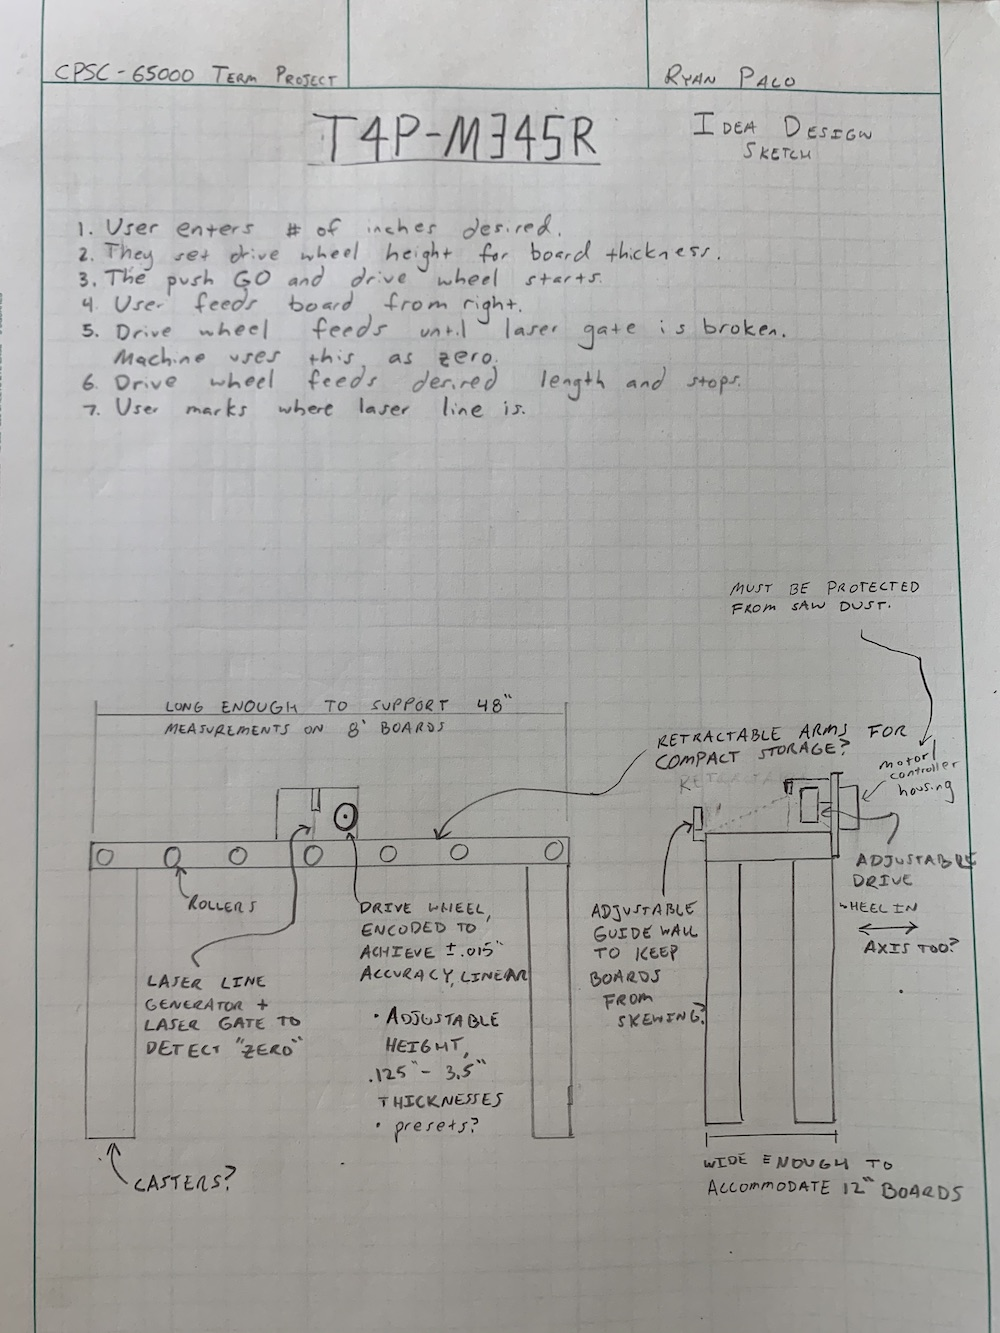 My initial design sketch showing my first thoughts for requirements.